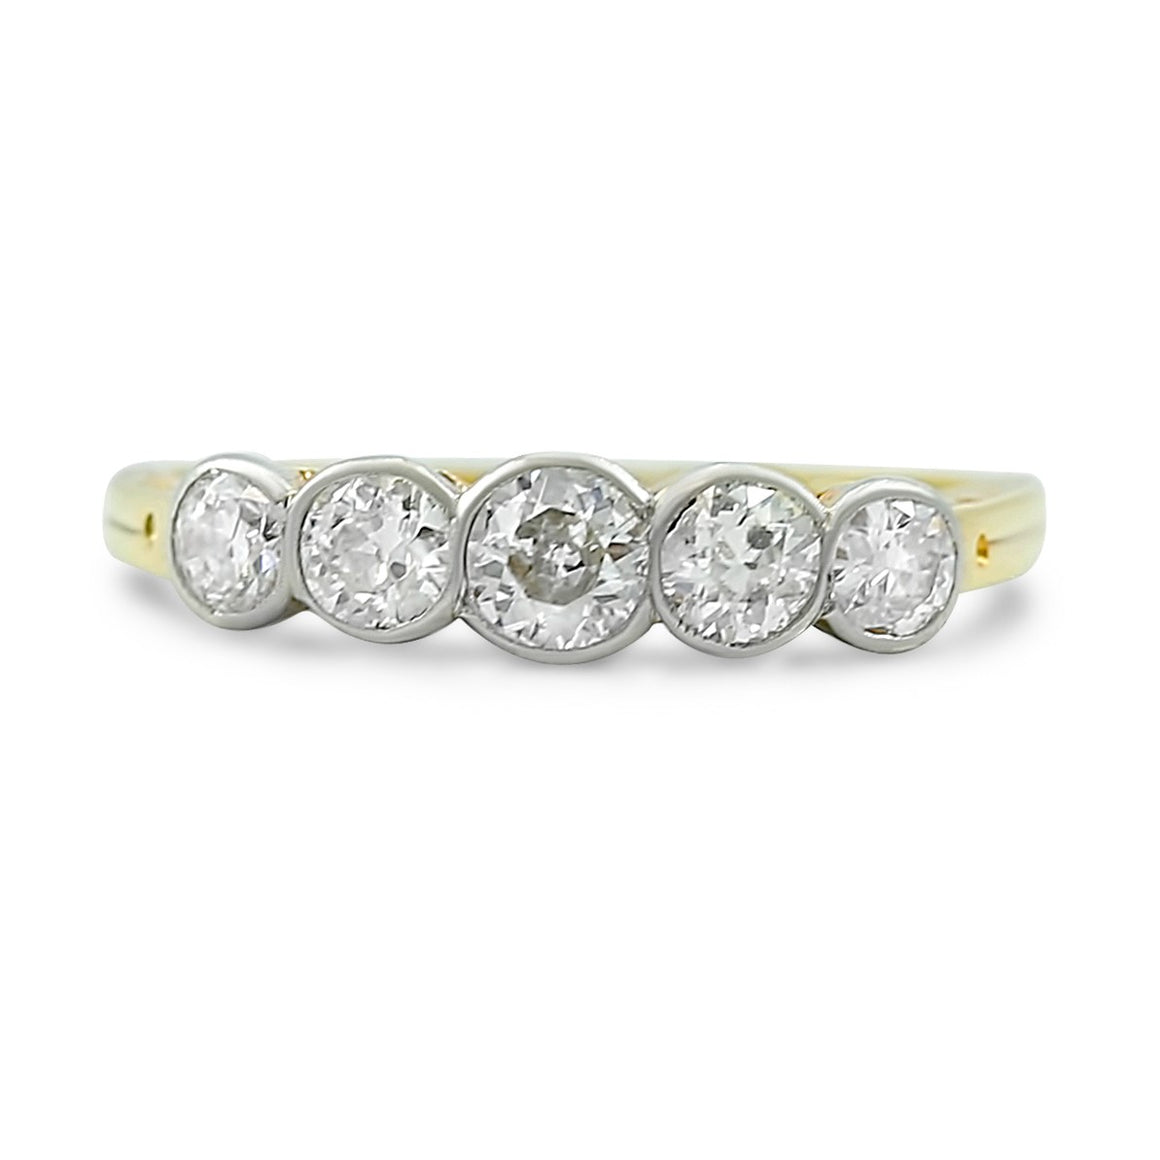 0.60tcw 5 stone  bezel set diamond antique ring set in platinum and 18k yellow gold c. 1930